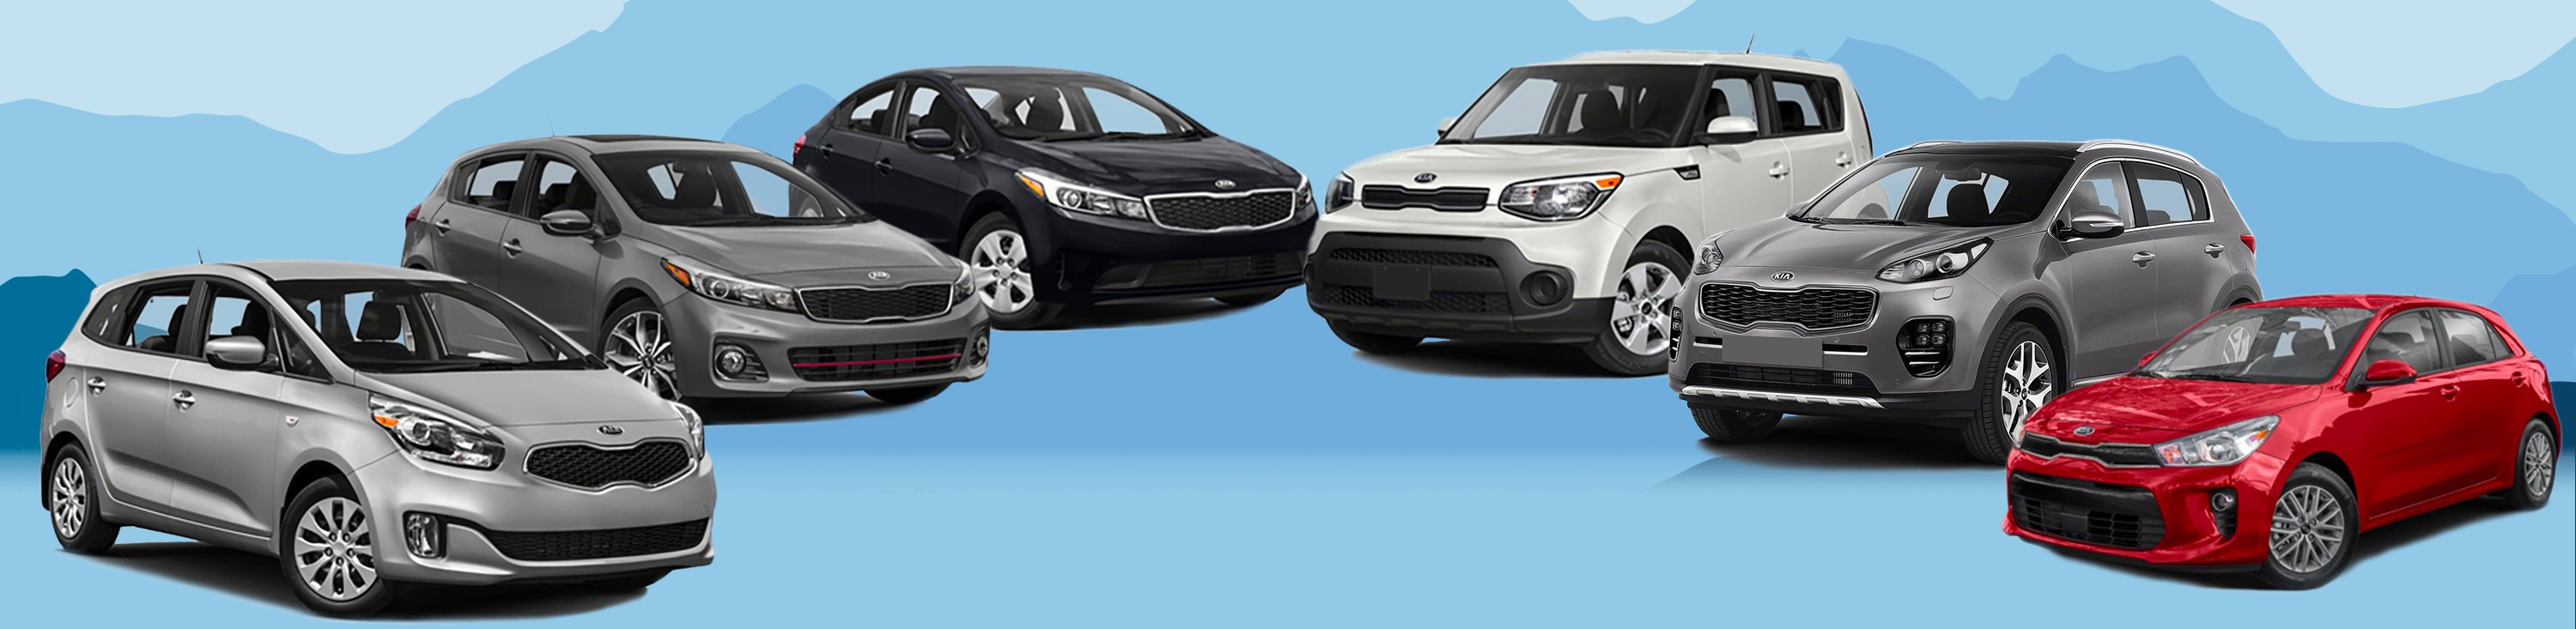 New Kia Cars, Hatchbacks & SUVs in Saint John